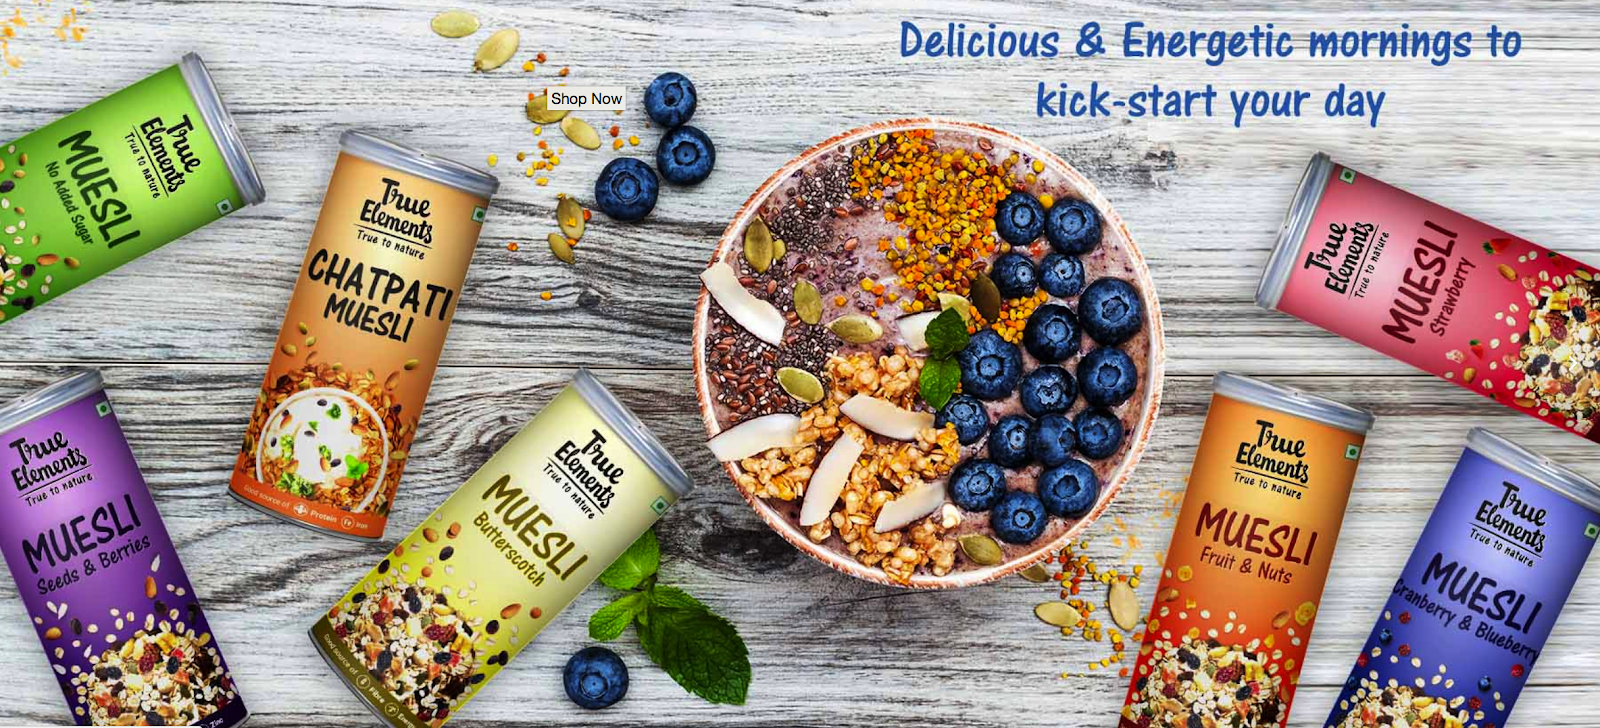 True Elements - Convenient Healthy Foods | Collab Opps for Influencers